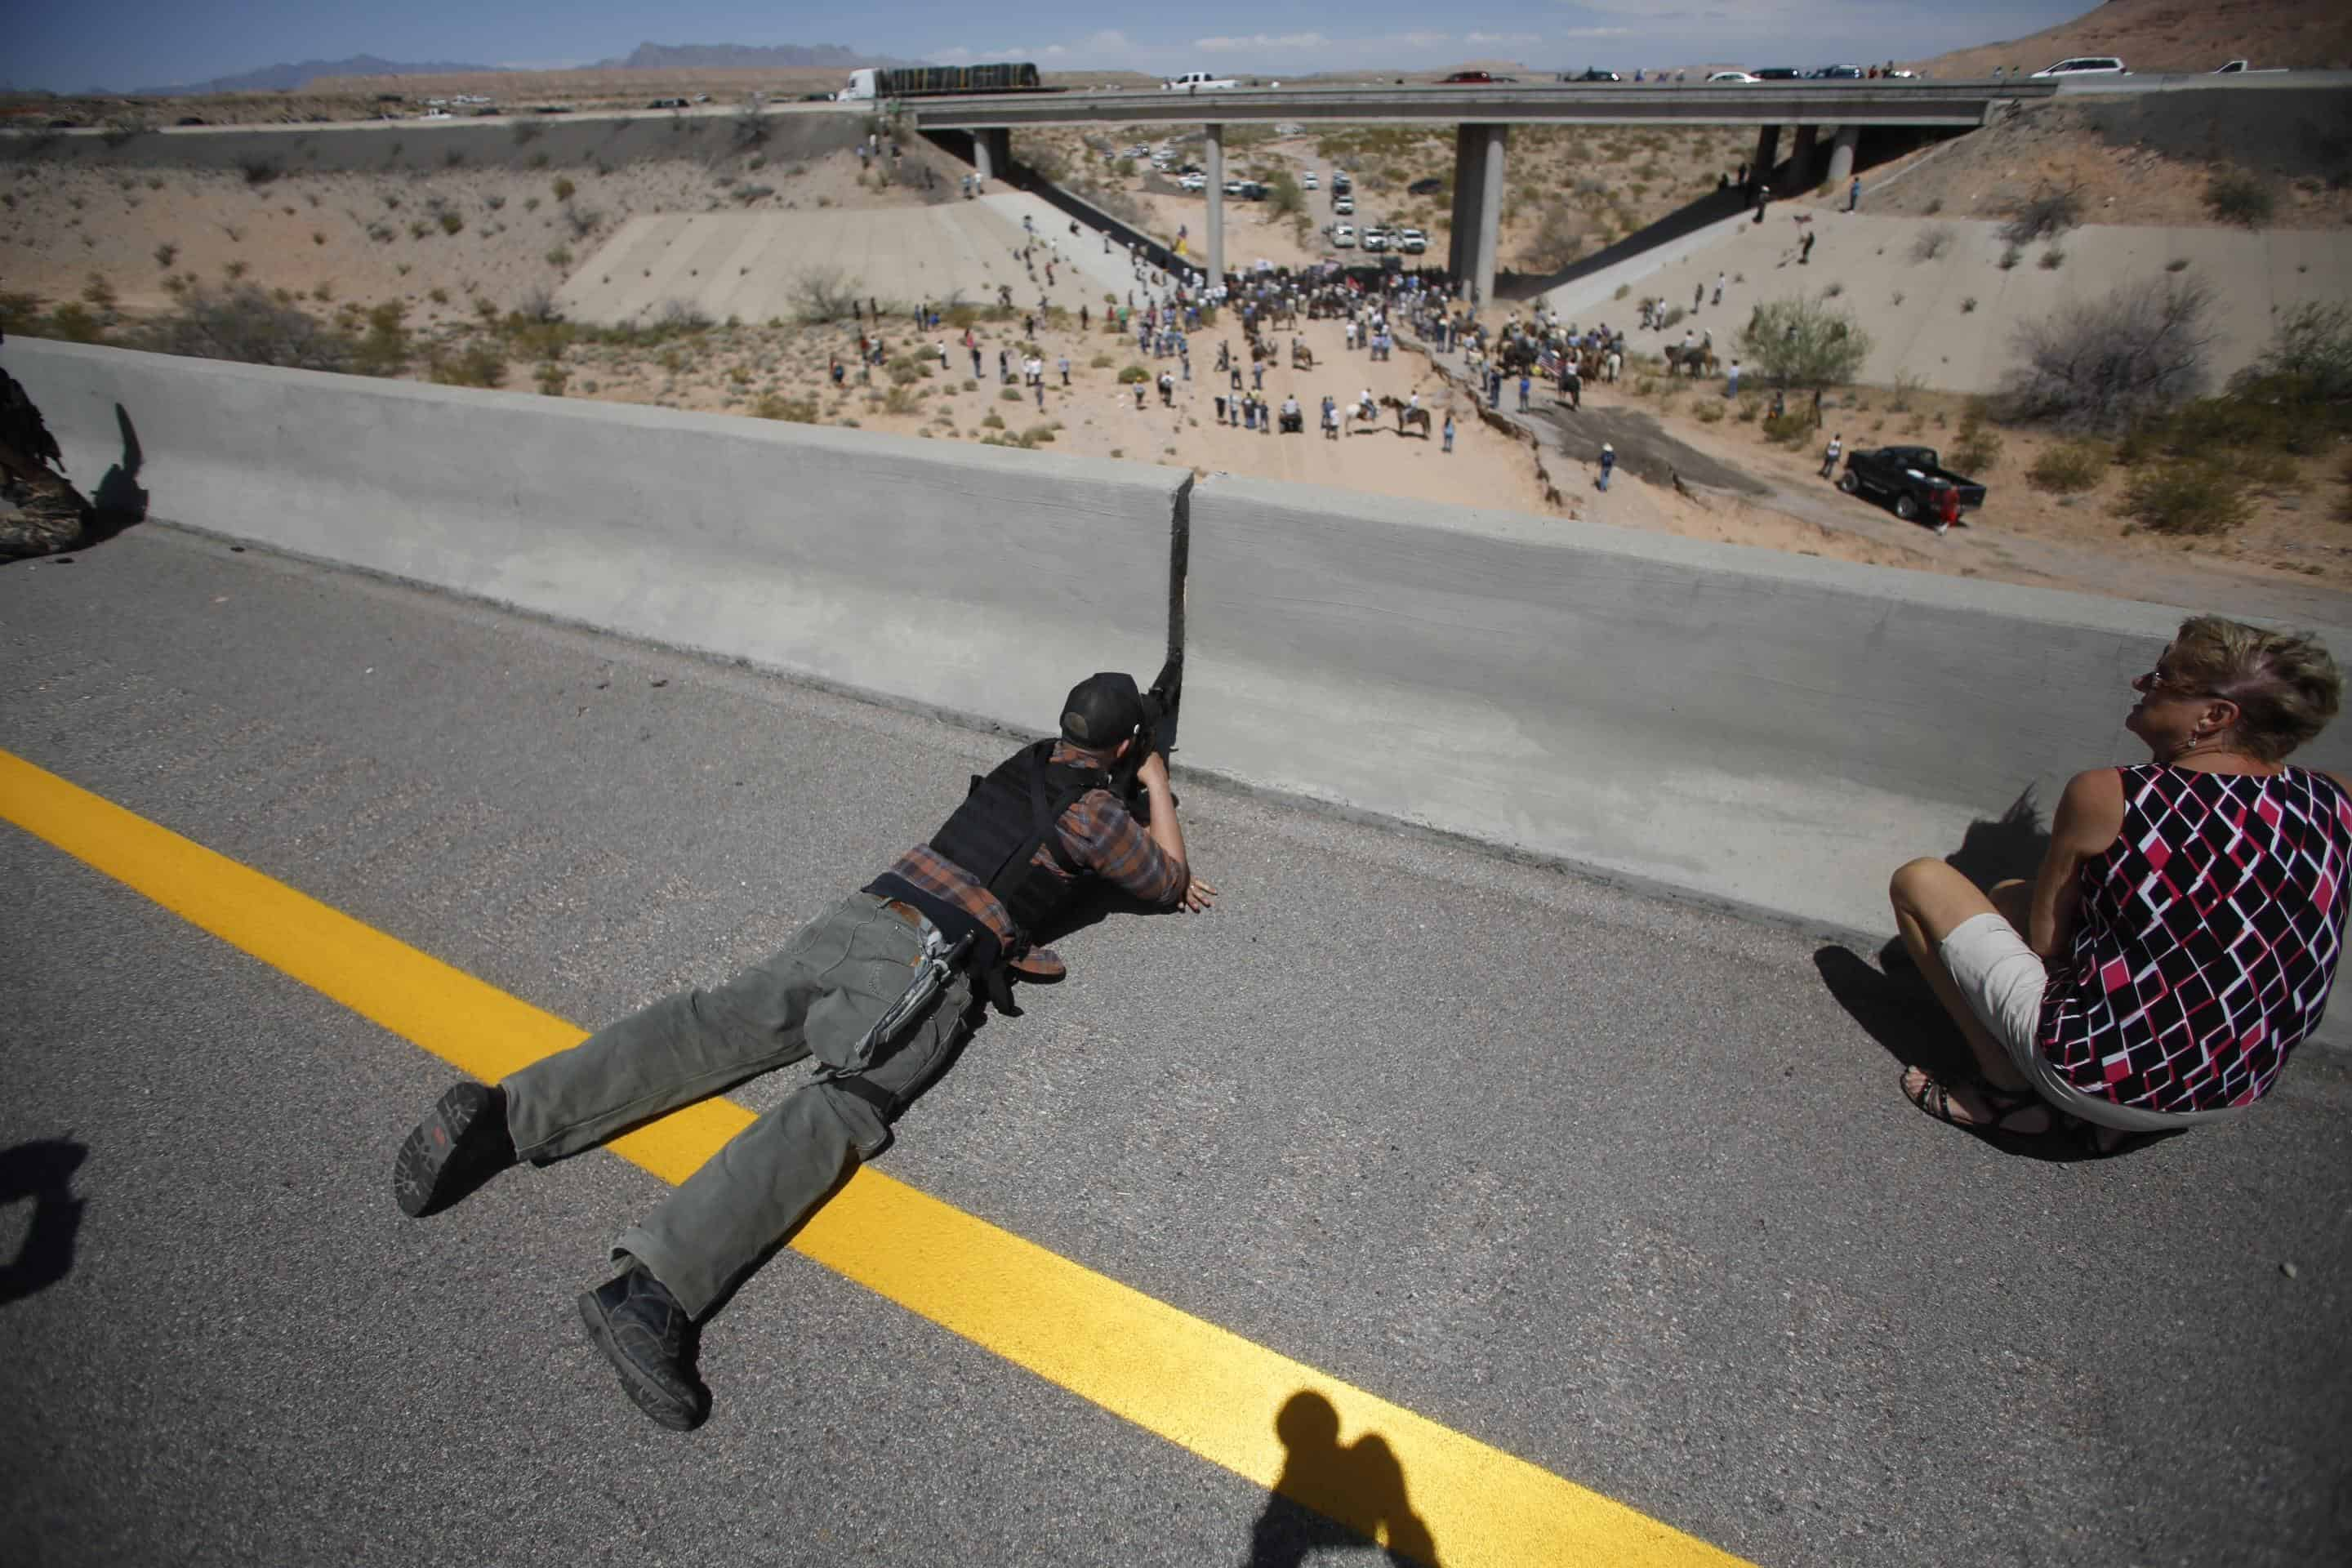 5 Years after Bundy Standoff: Social Media Inspires, Defines ...